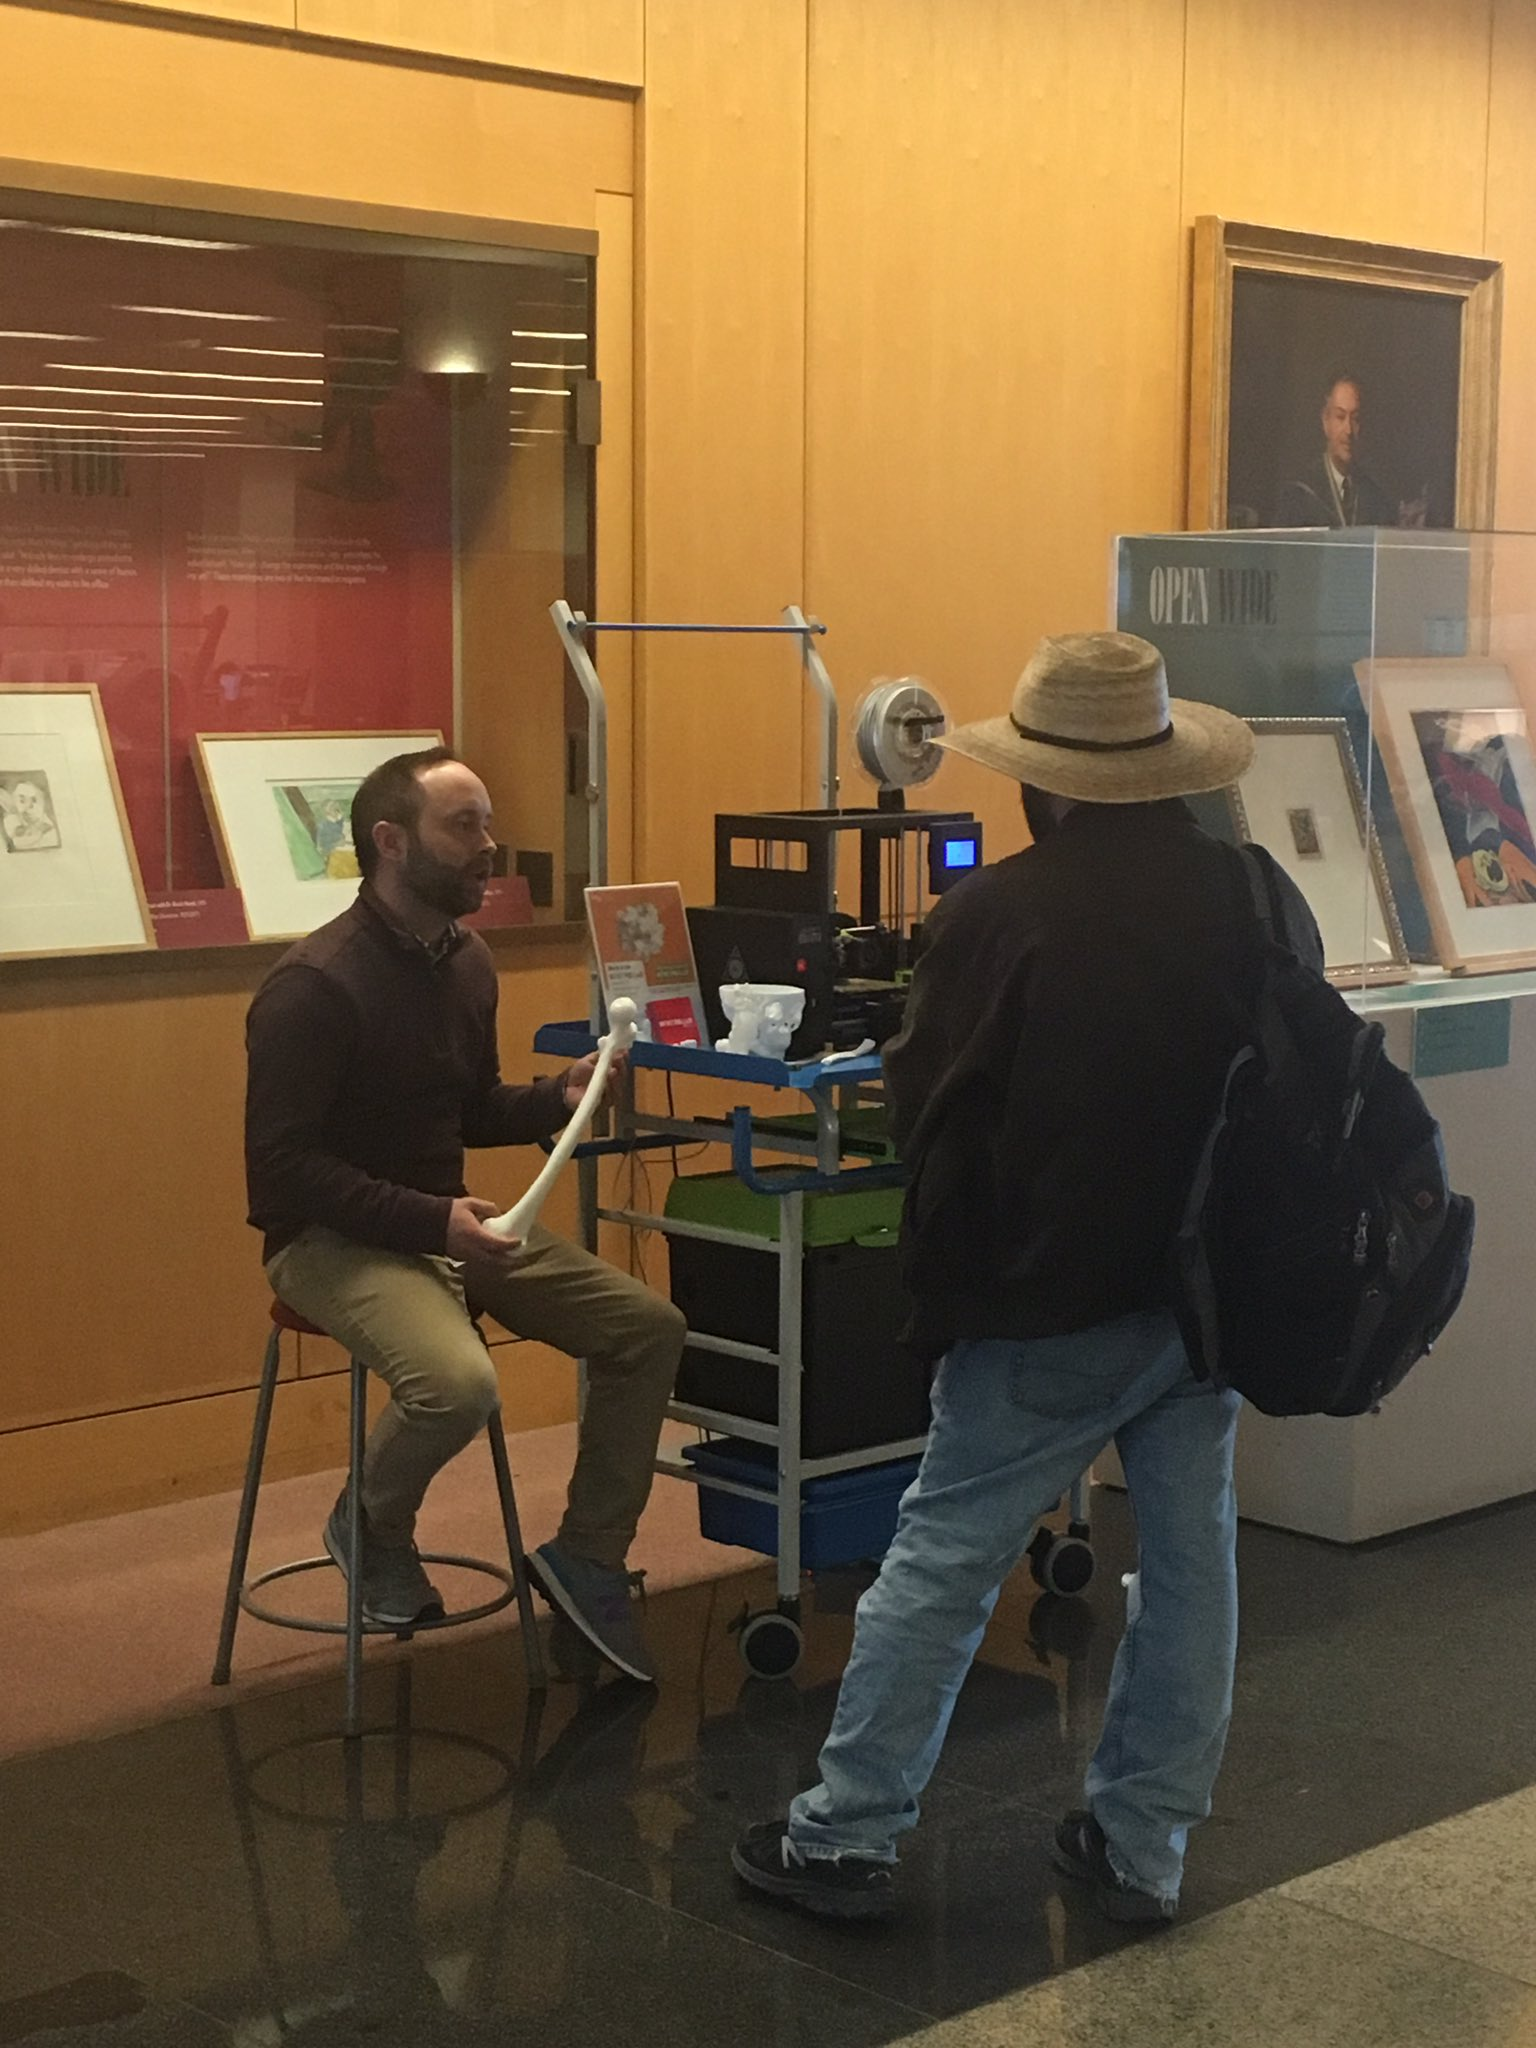 UCSF Library on Twitter: